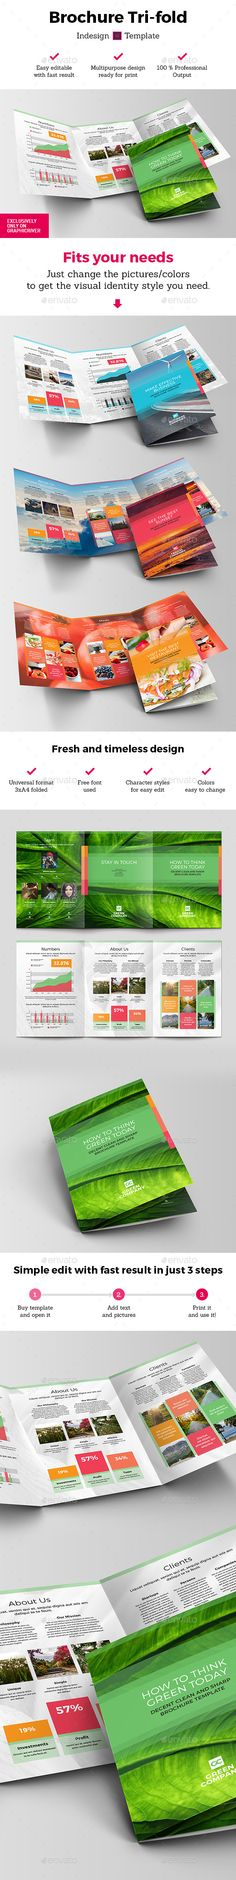 Brochure Tri-fold Indesign Template Green. Download here: http://graphicriver.net/item/brochure-trifold-indesign-template-green/16299059?ref=ksioks